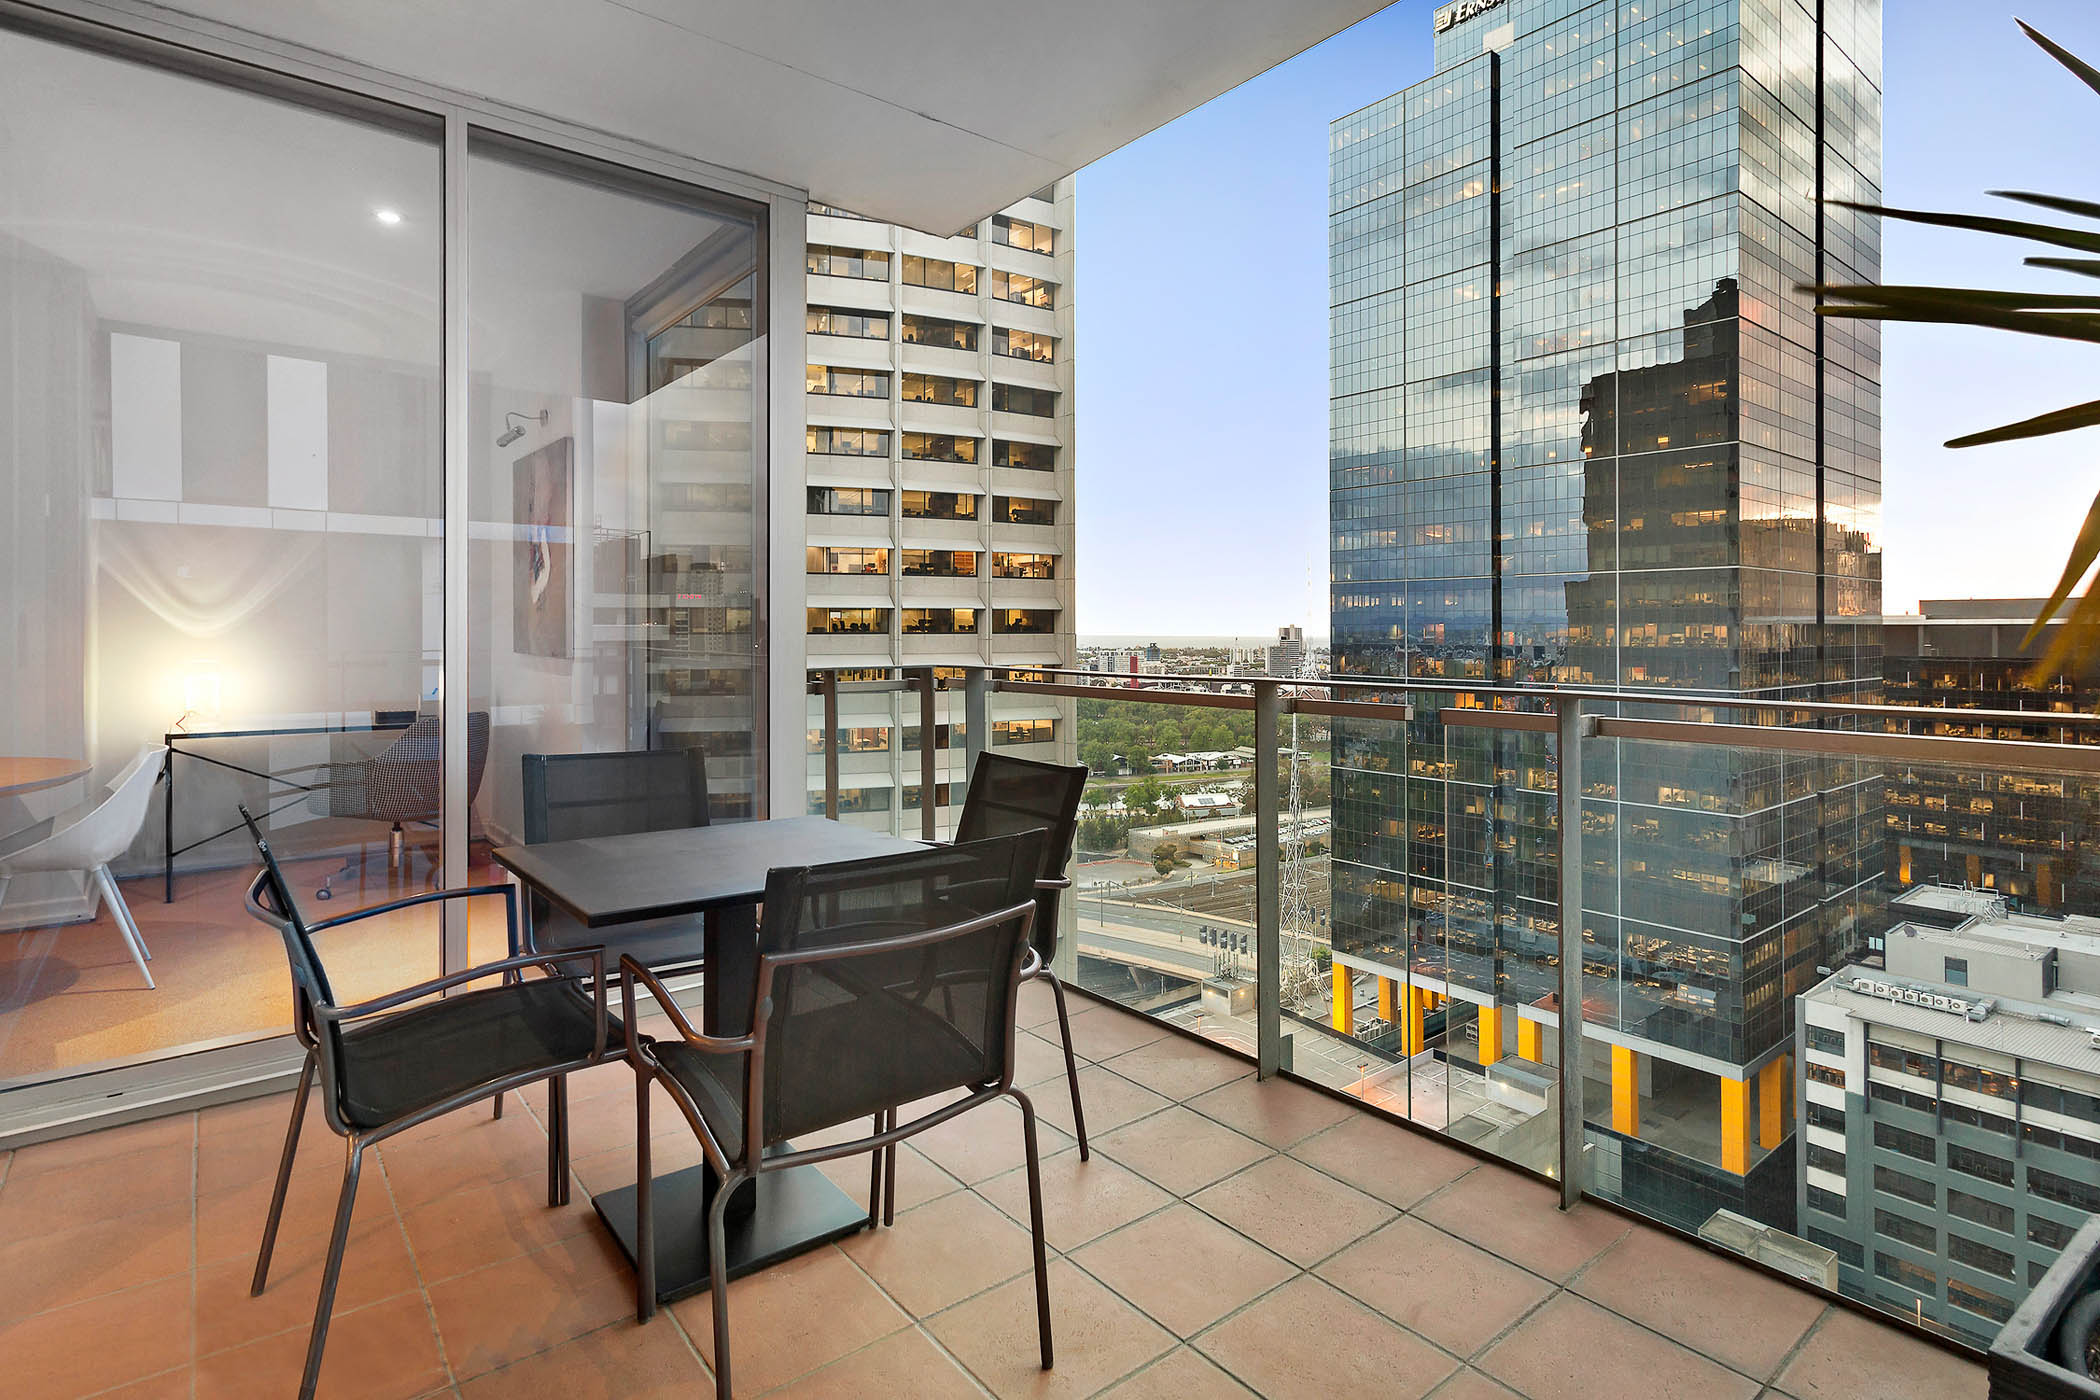 1804-31-spring-street-melbourne-student-accommodation-Melbourne-Balcony-Unilodgers